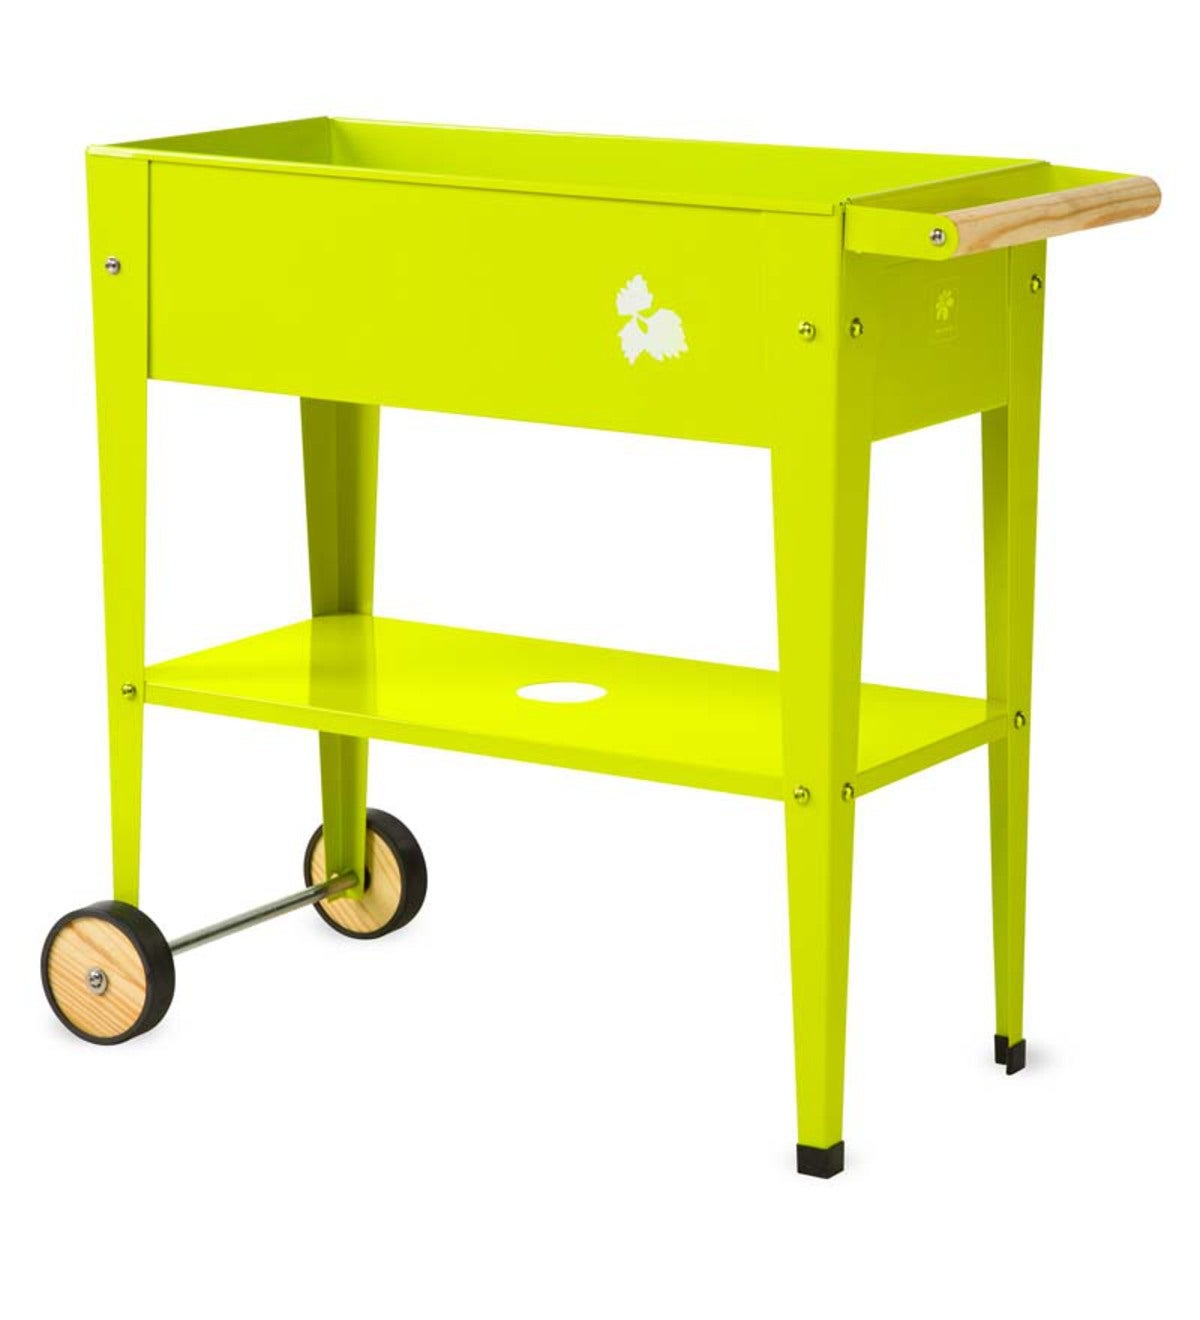 Colorful Steel Garden Trolley Planter - Green